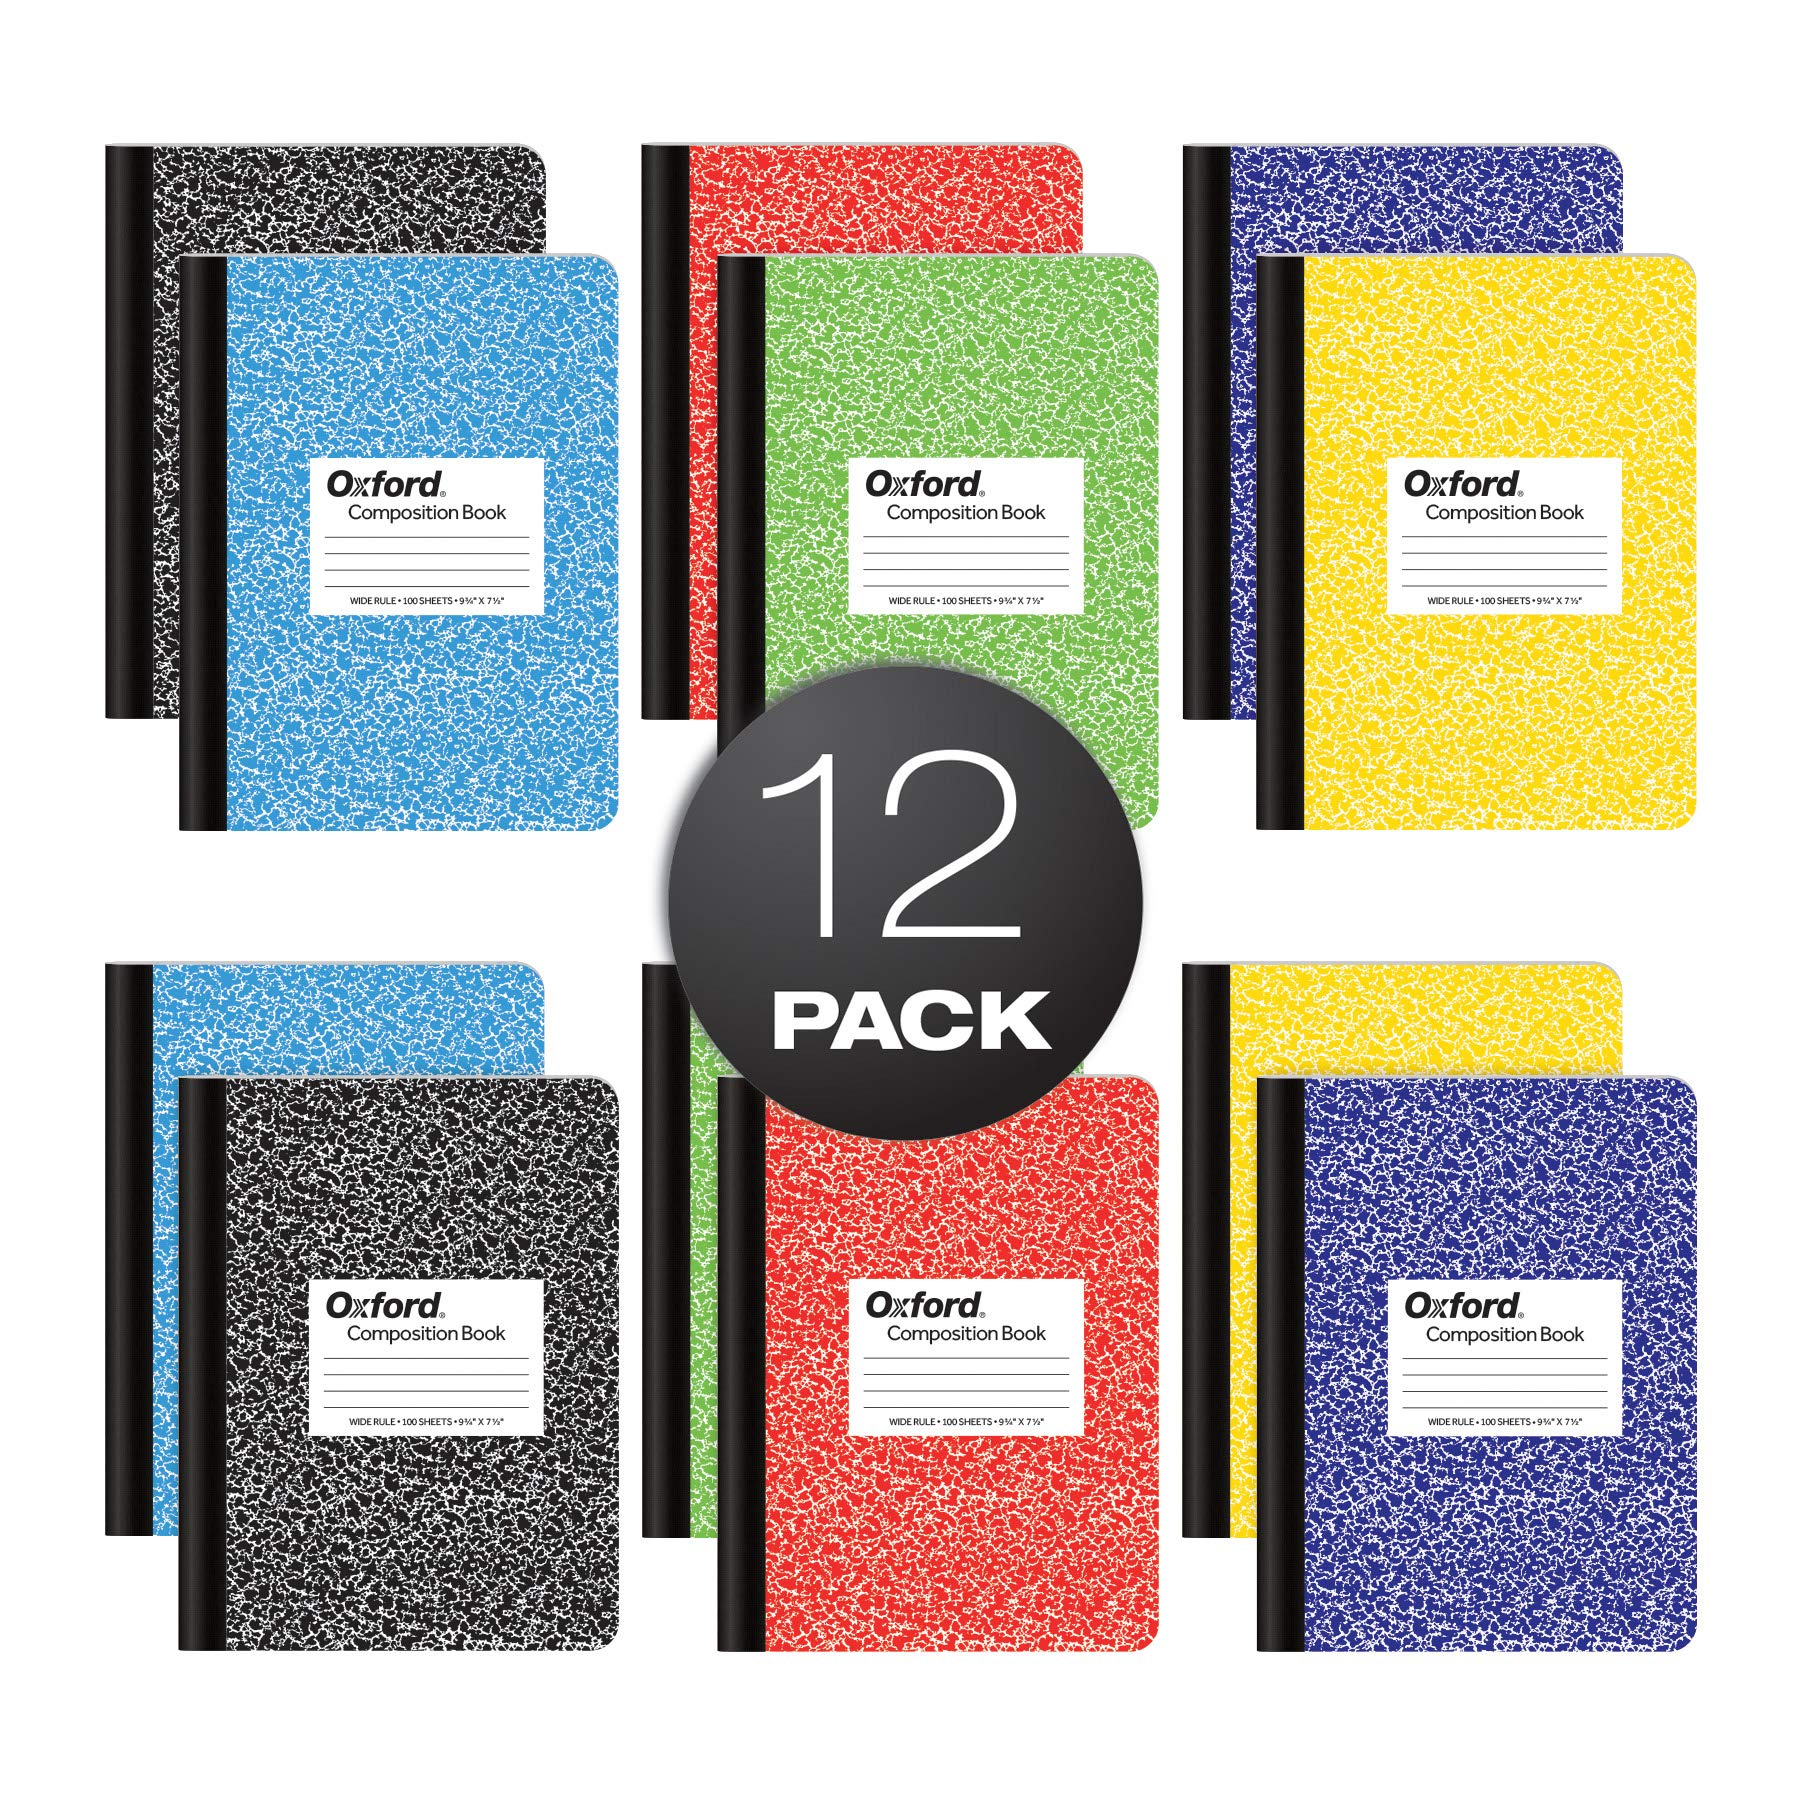 """Oxford Composition Notebooks, Wide Ruled Paper, 9-3/4"""" x 7-1/2"""", Assorted Marble Covers, 100 Sheets, 12 per Pack, Colors May Vary (63794)"""